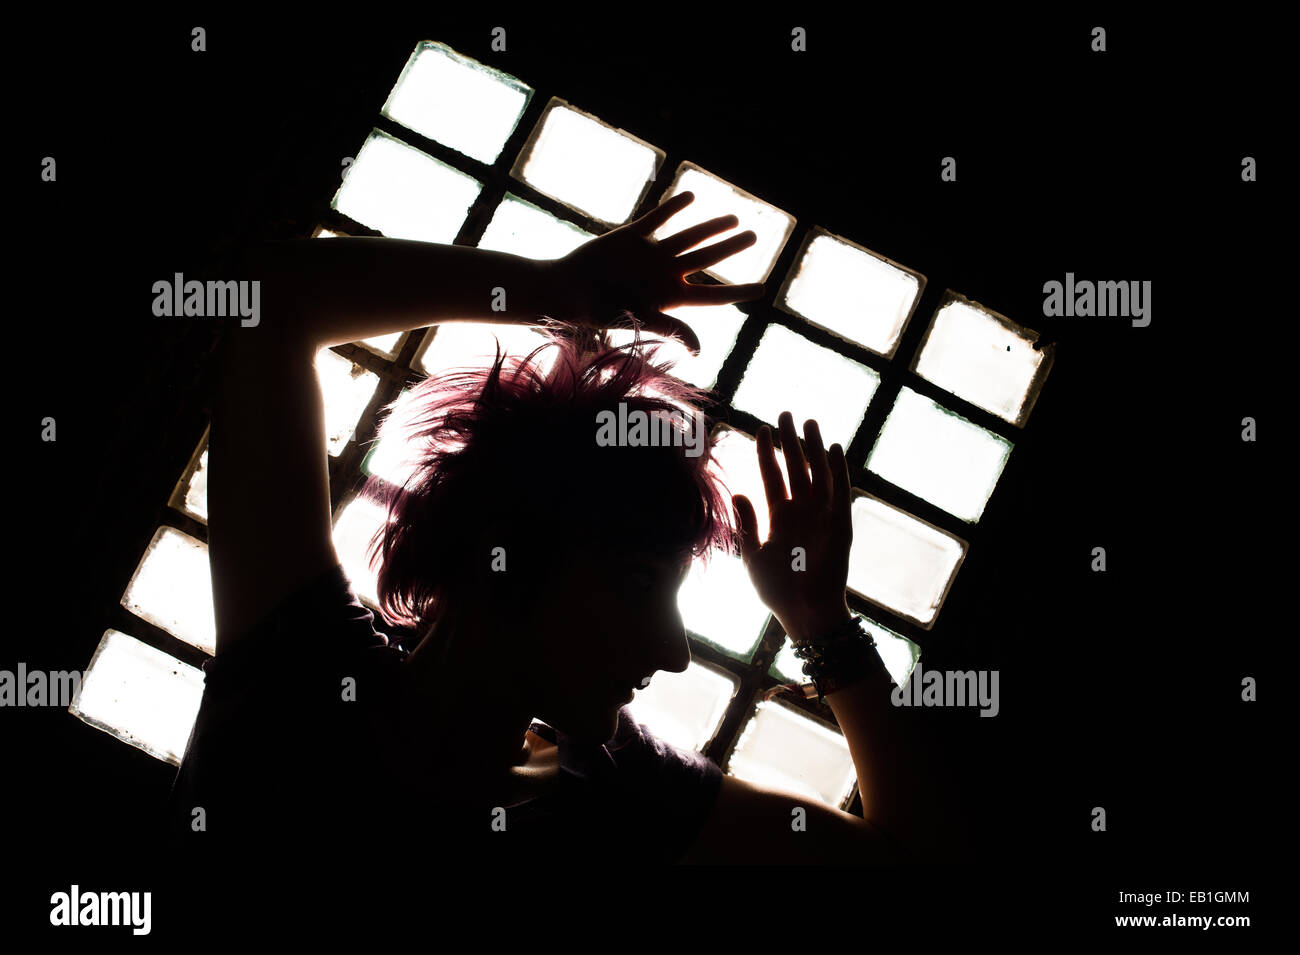 A young teenage girl woman trapped confined in a prison cell type location with light streaming through a barred - Stock Image